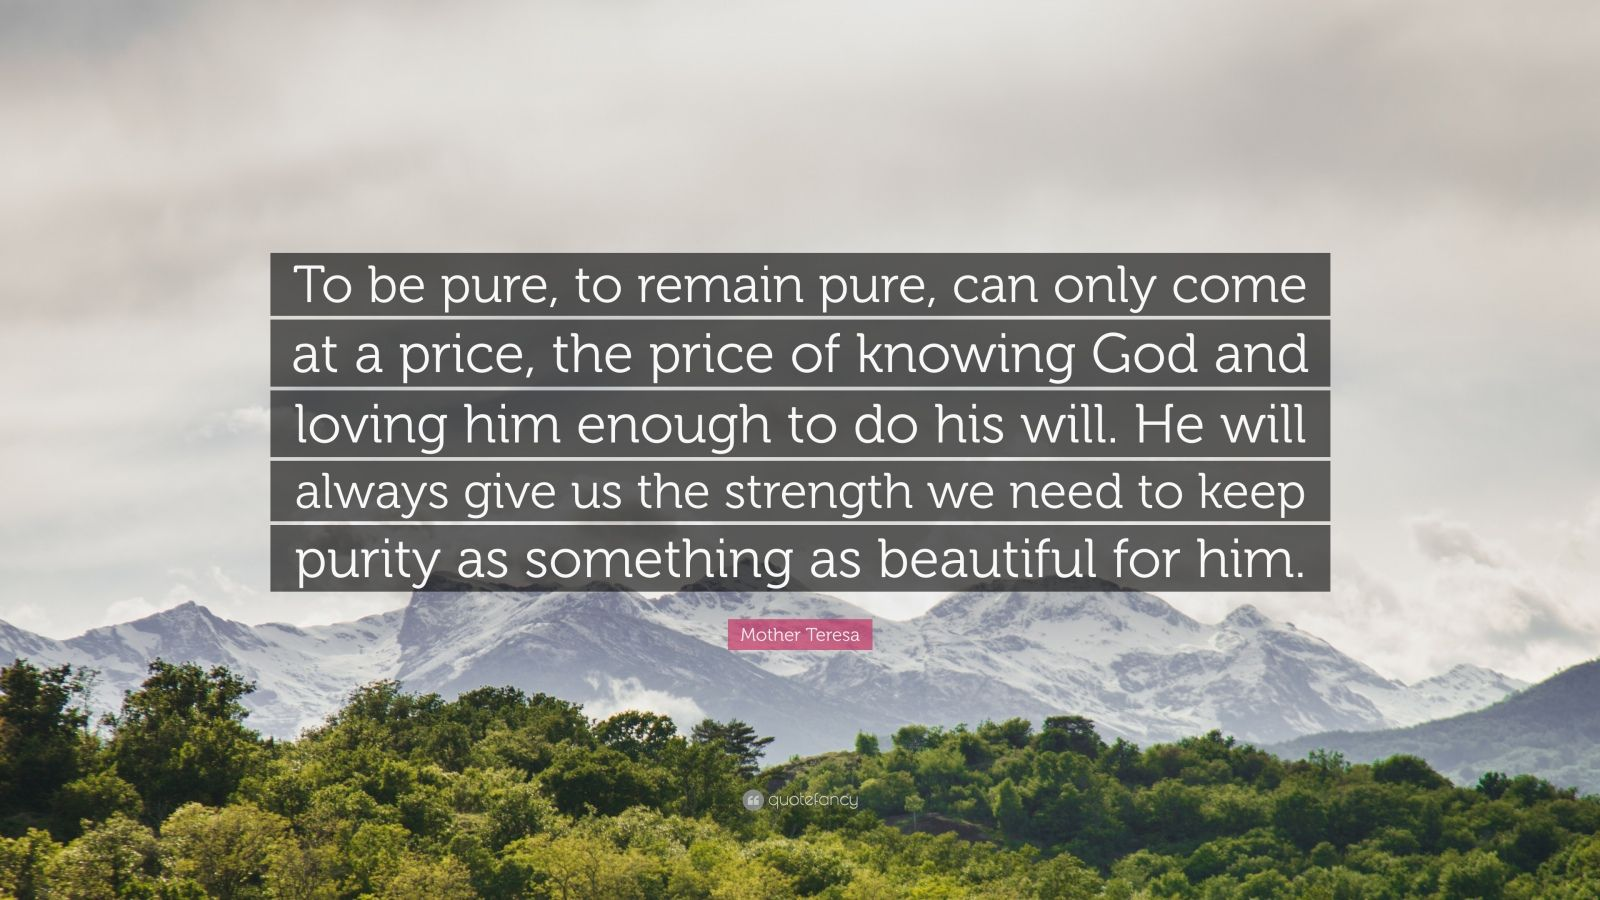 "Mother Teresa Quote: ""To be pure, to remain pure, can only come at a price, the price of knowing God and loving him enough to do his will. He will always give us the strength we need to keep purity as something as beautiful for him."""